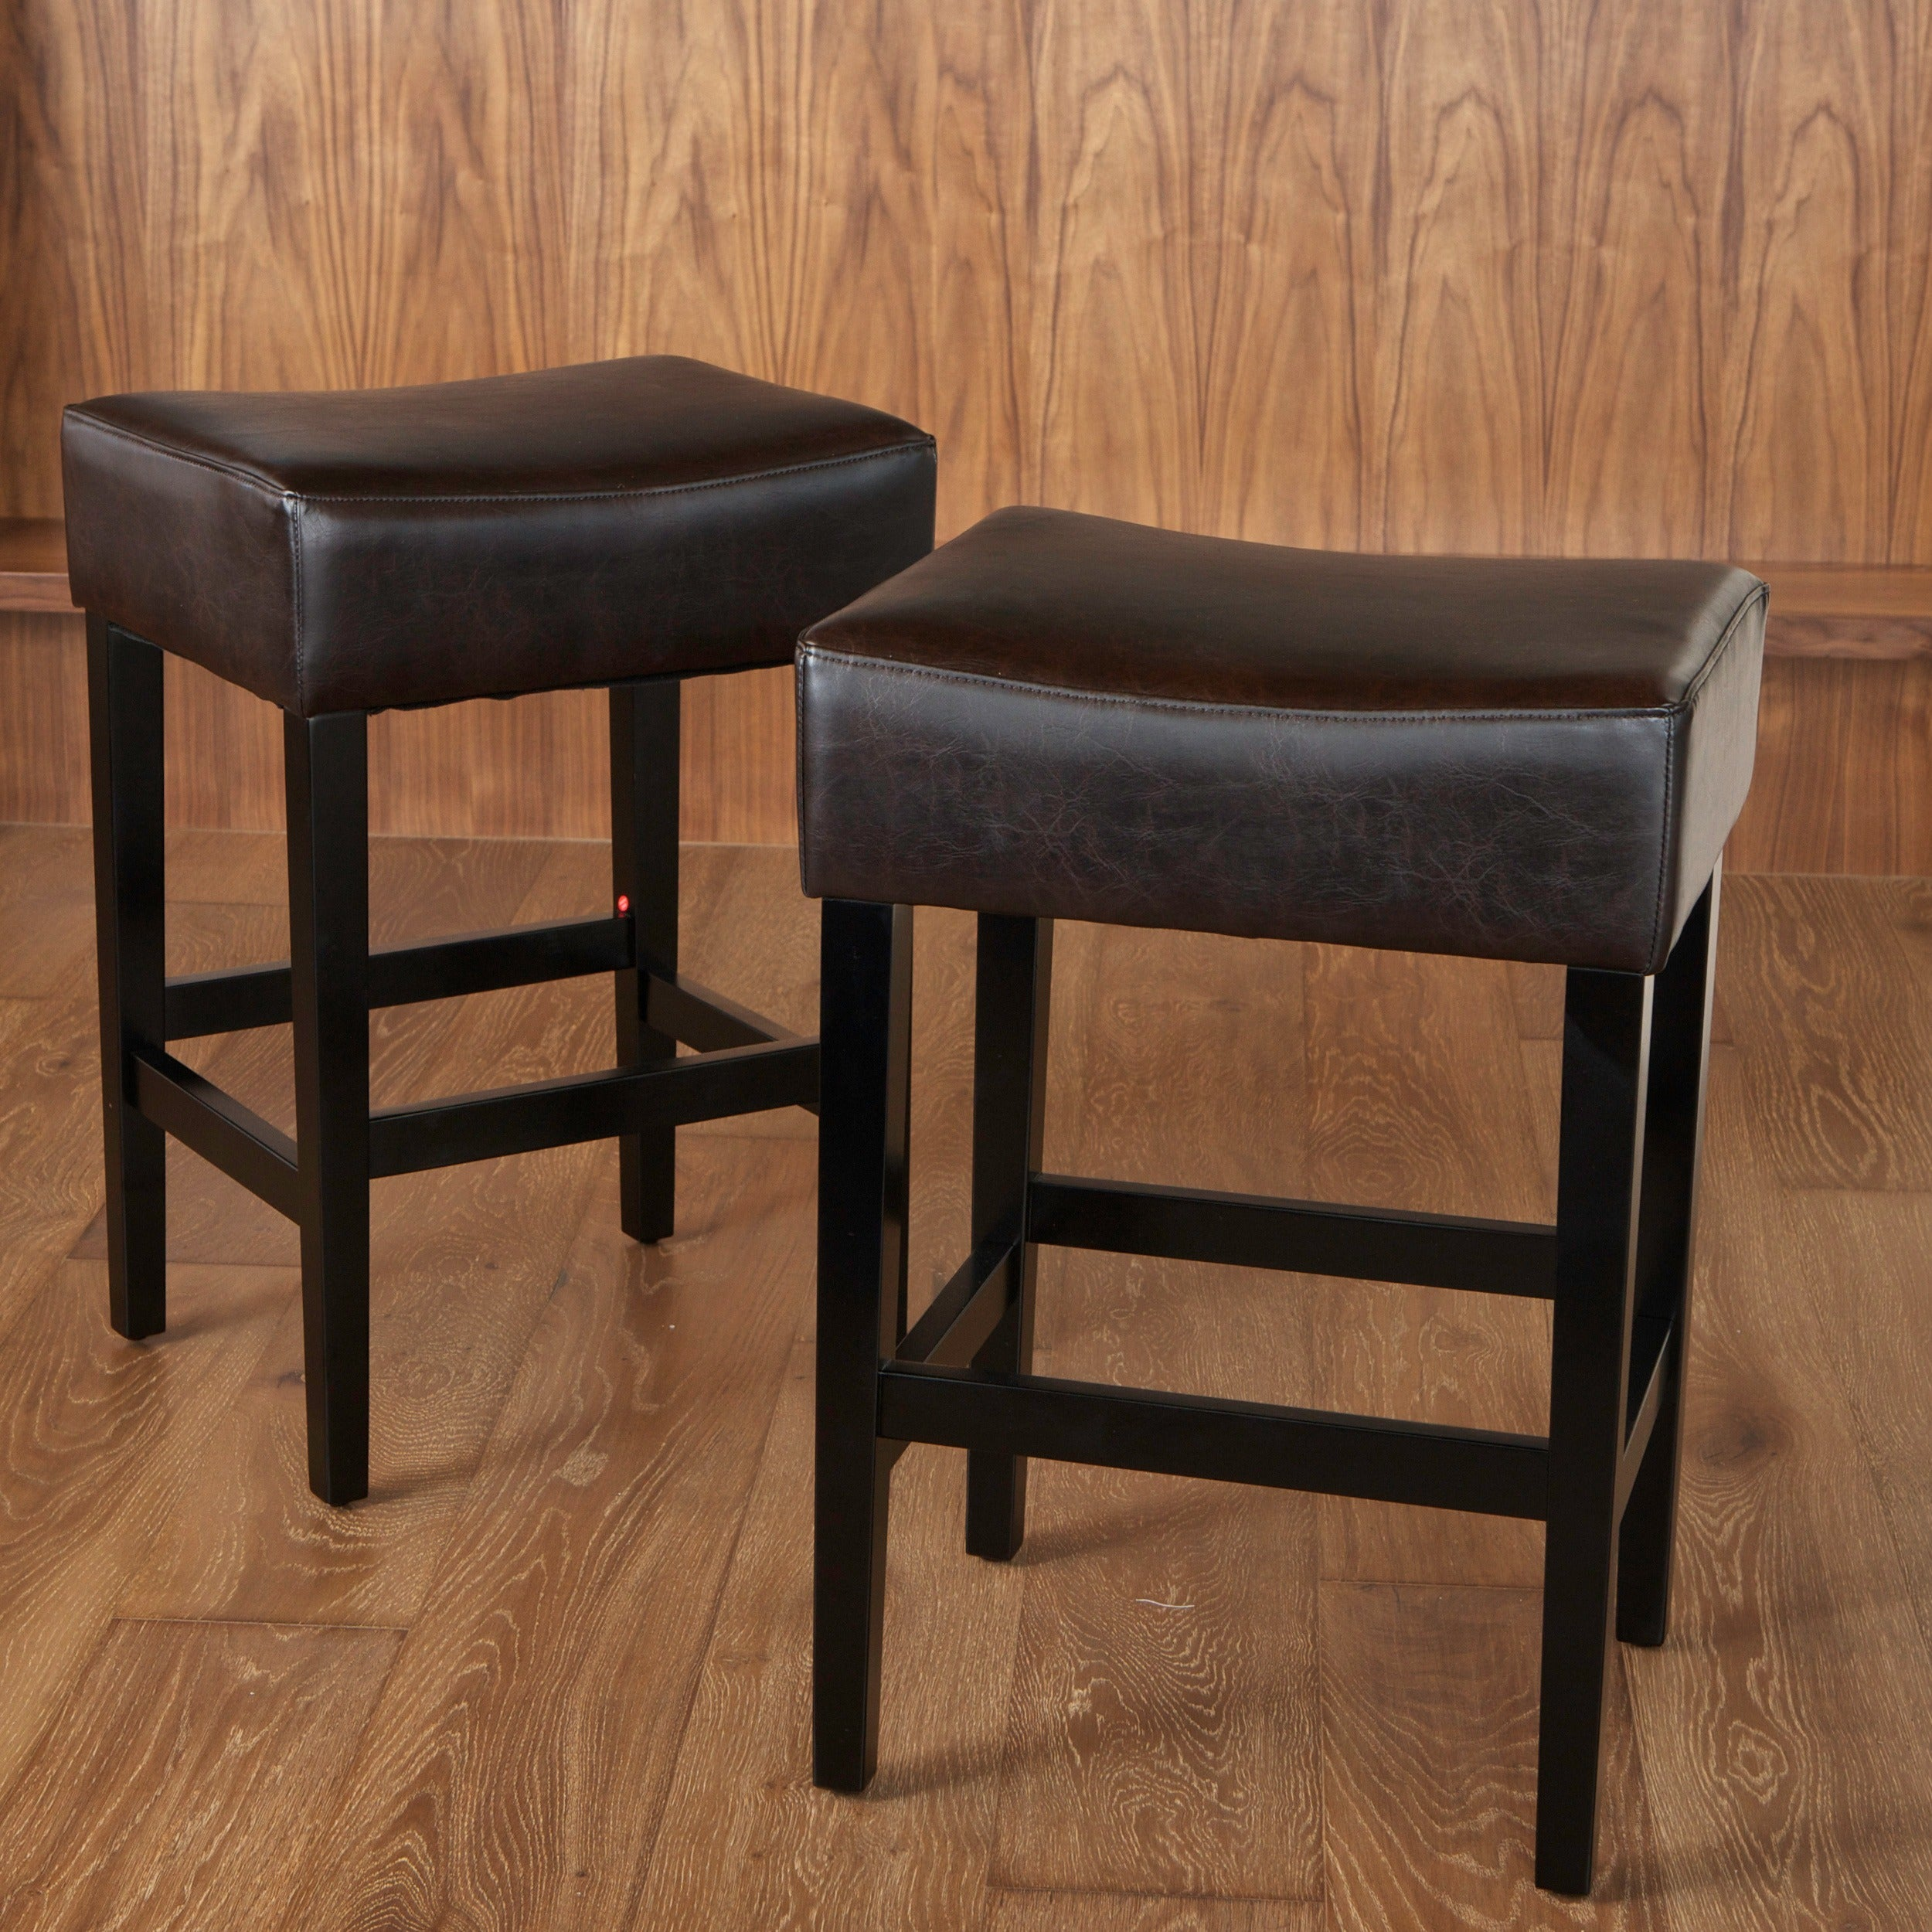 Tremendous Lopez 27 Inch Backless Brown Leather Counterstools Set Of 2 By Christopher Knight Home Gmtry Best Dining Table And Chair Ideas Images Gmtryco